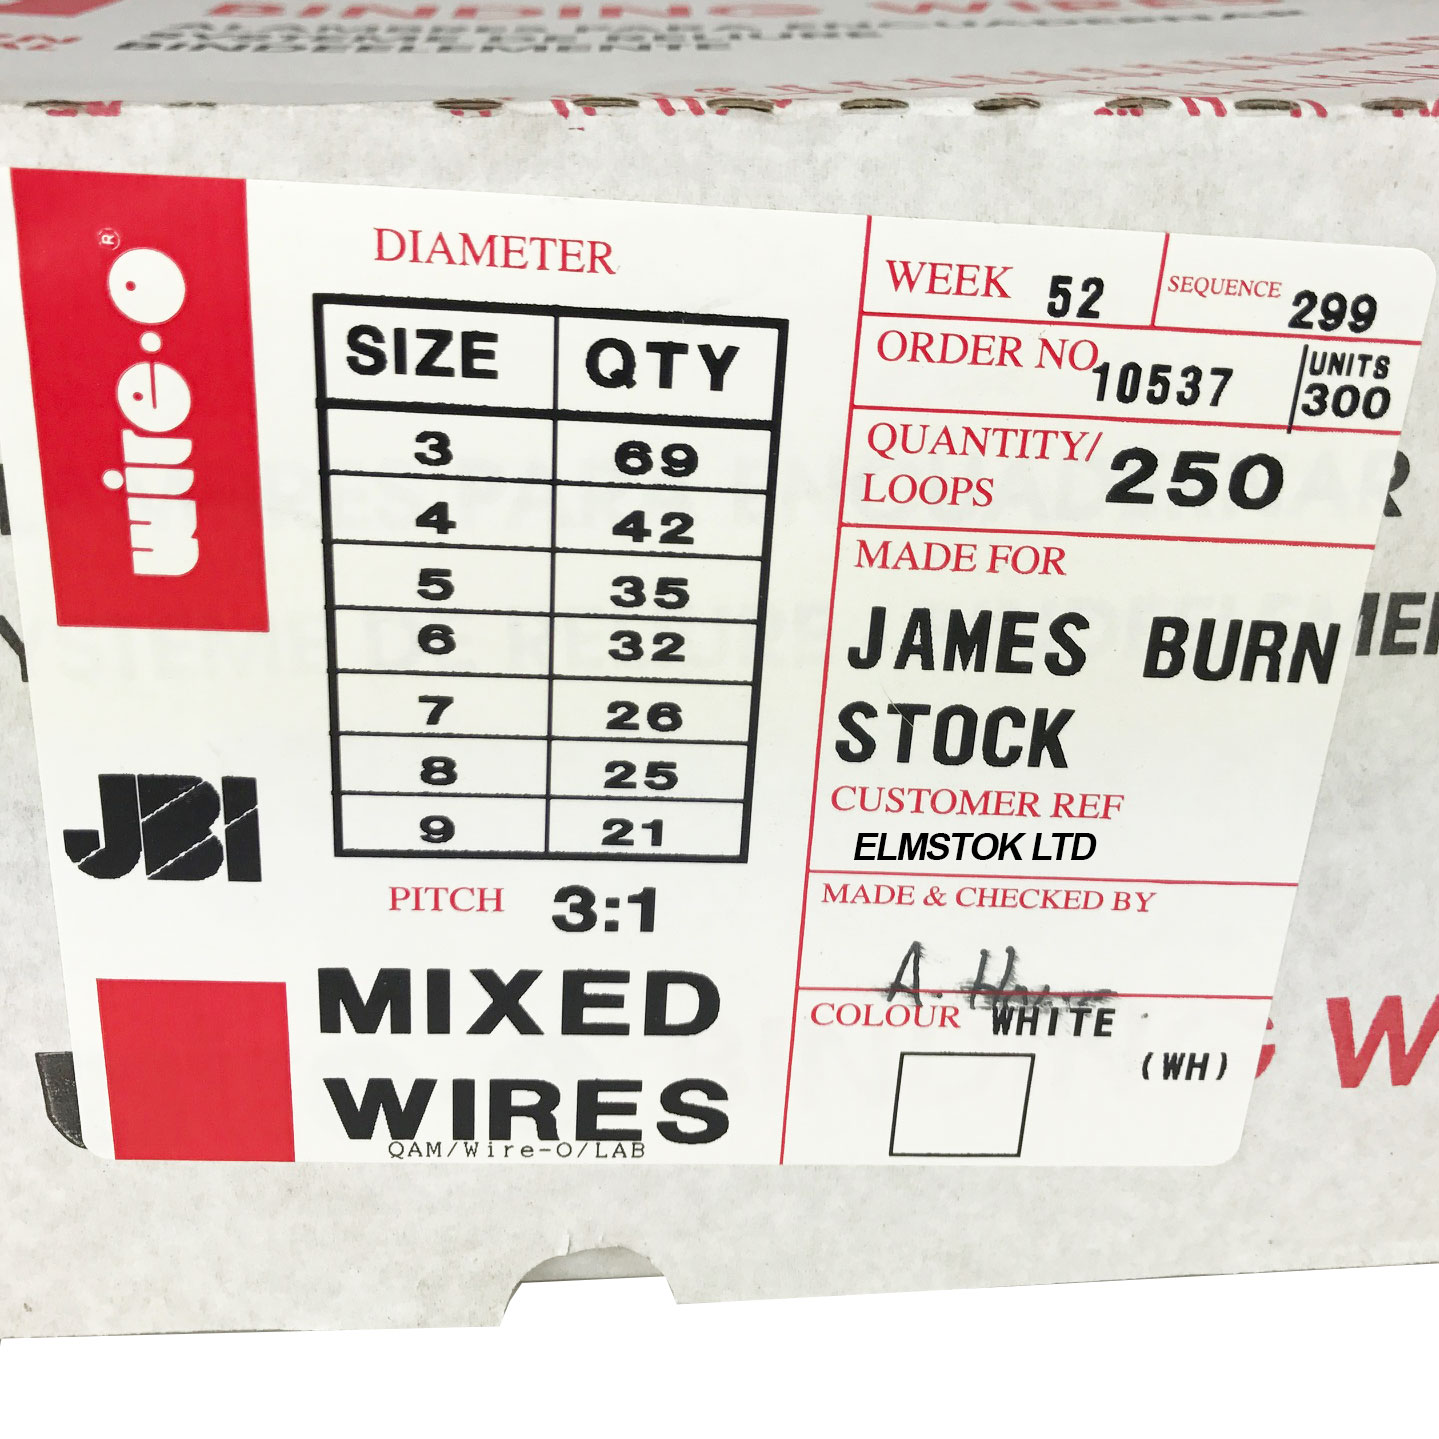 James Burn Mixed 3:1 White Binding Wire Diameter Sizes 3, 4, 5, 6, 7 ...